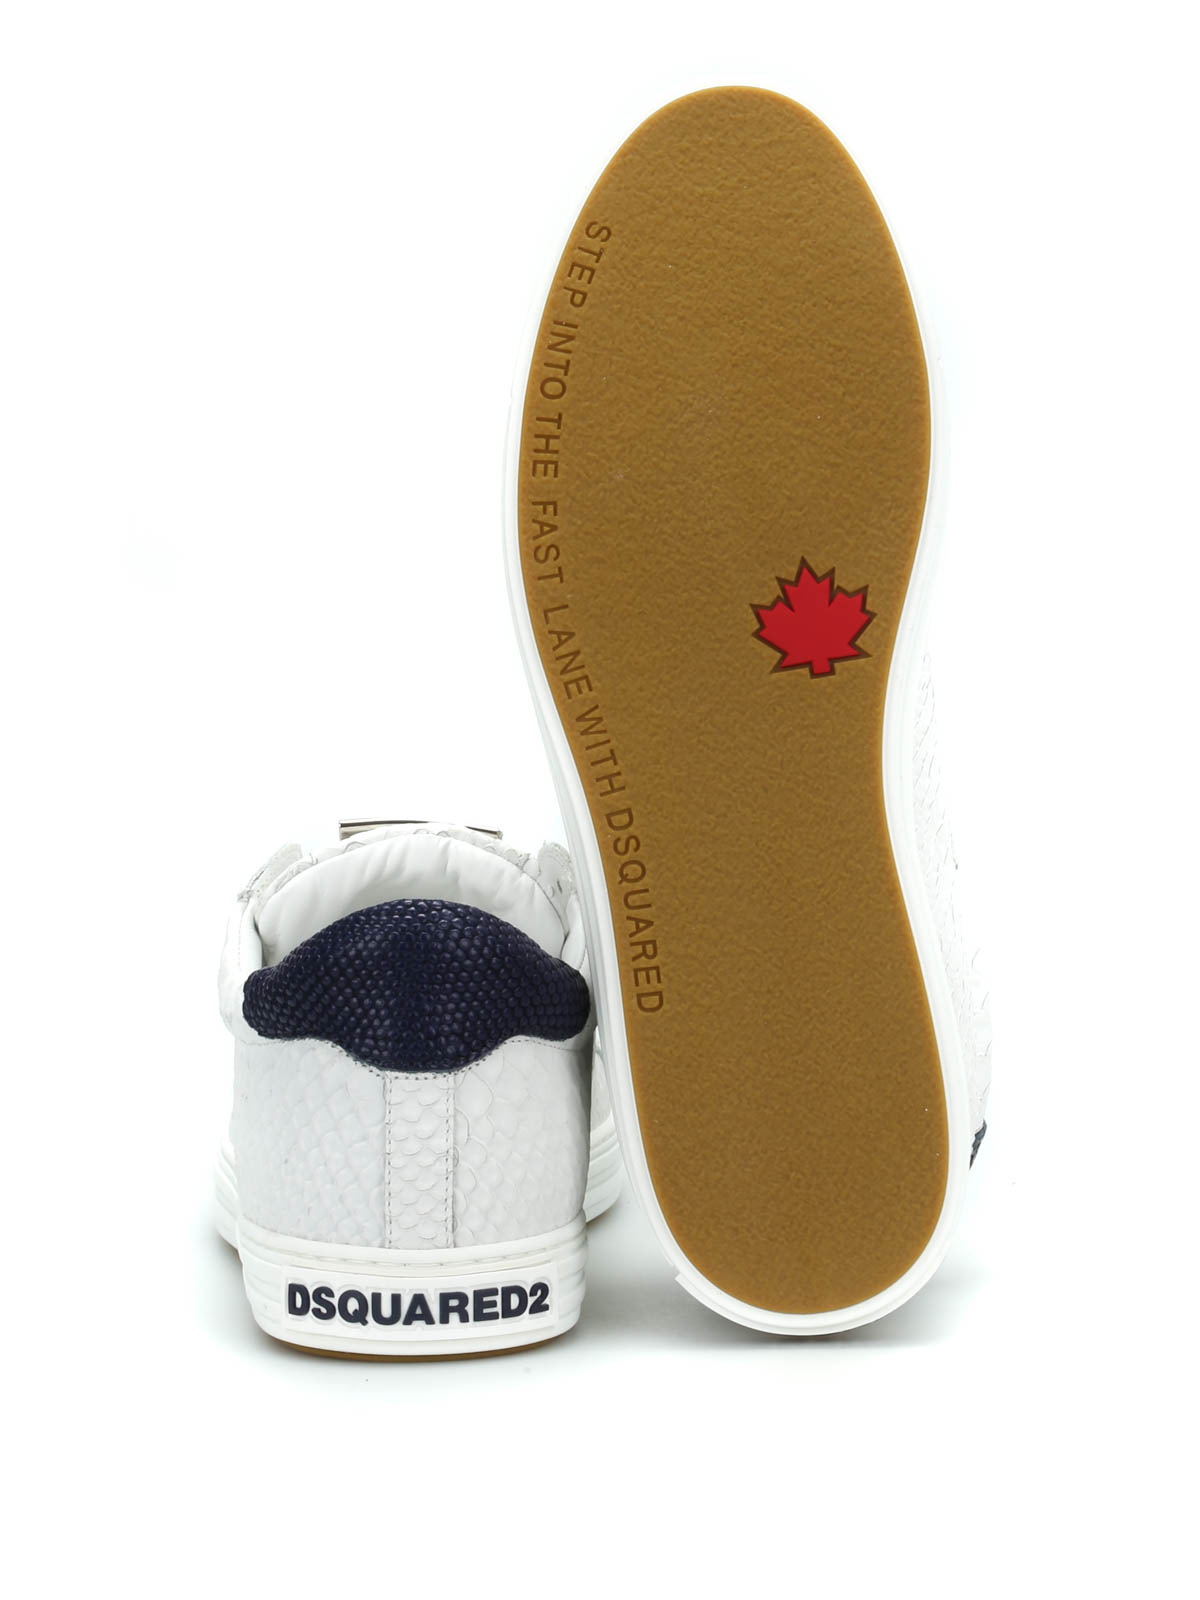 865468f15c85e Dsquared2 - Tennis Club sneakers - trainers - S16SN103 446 M313